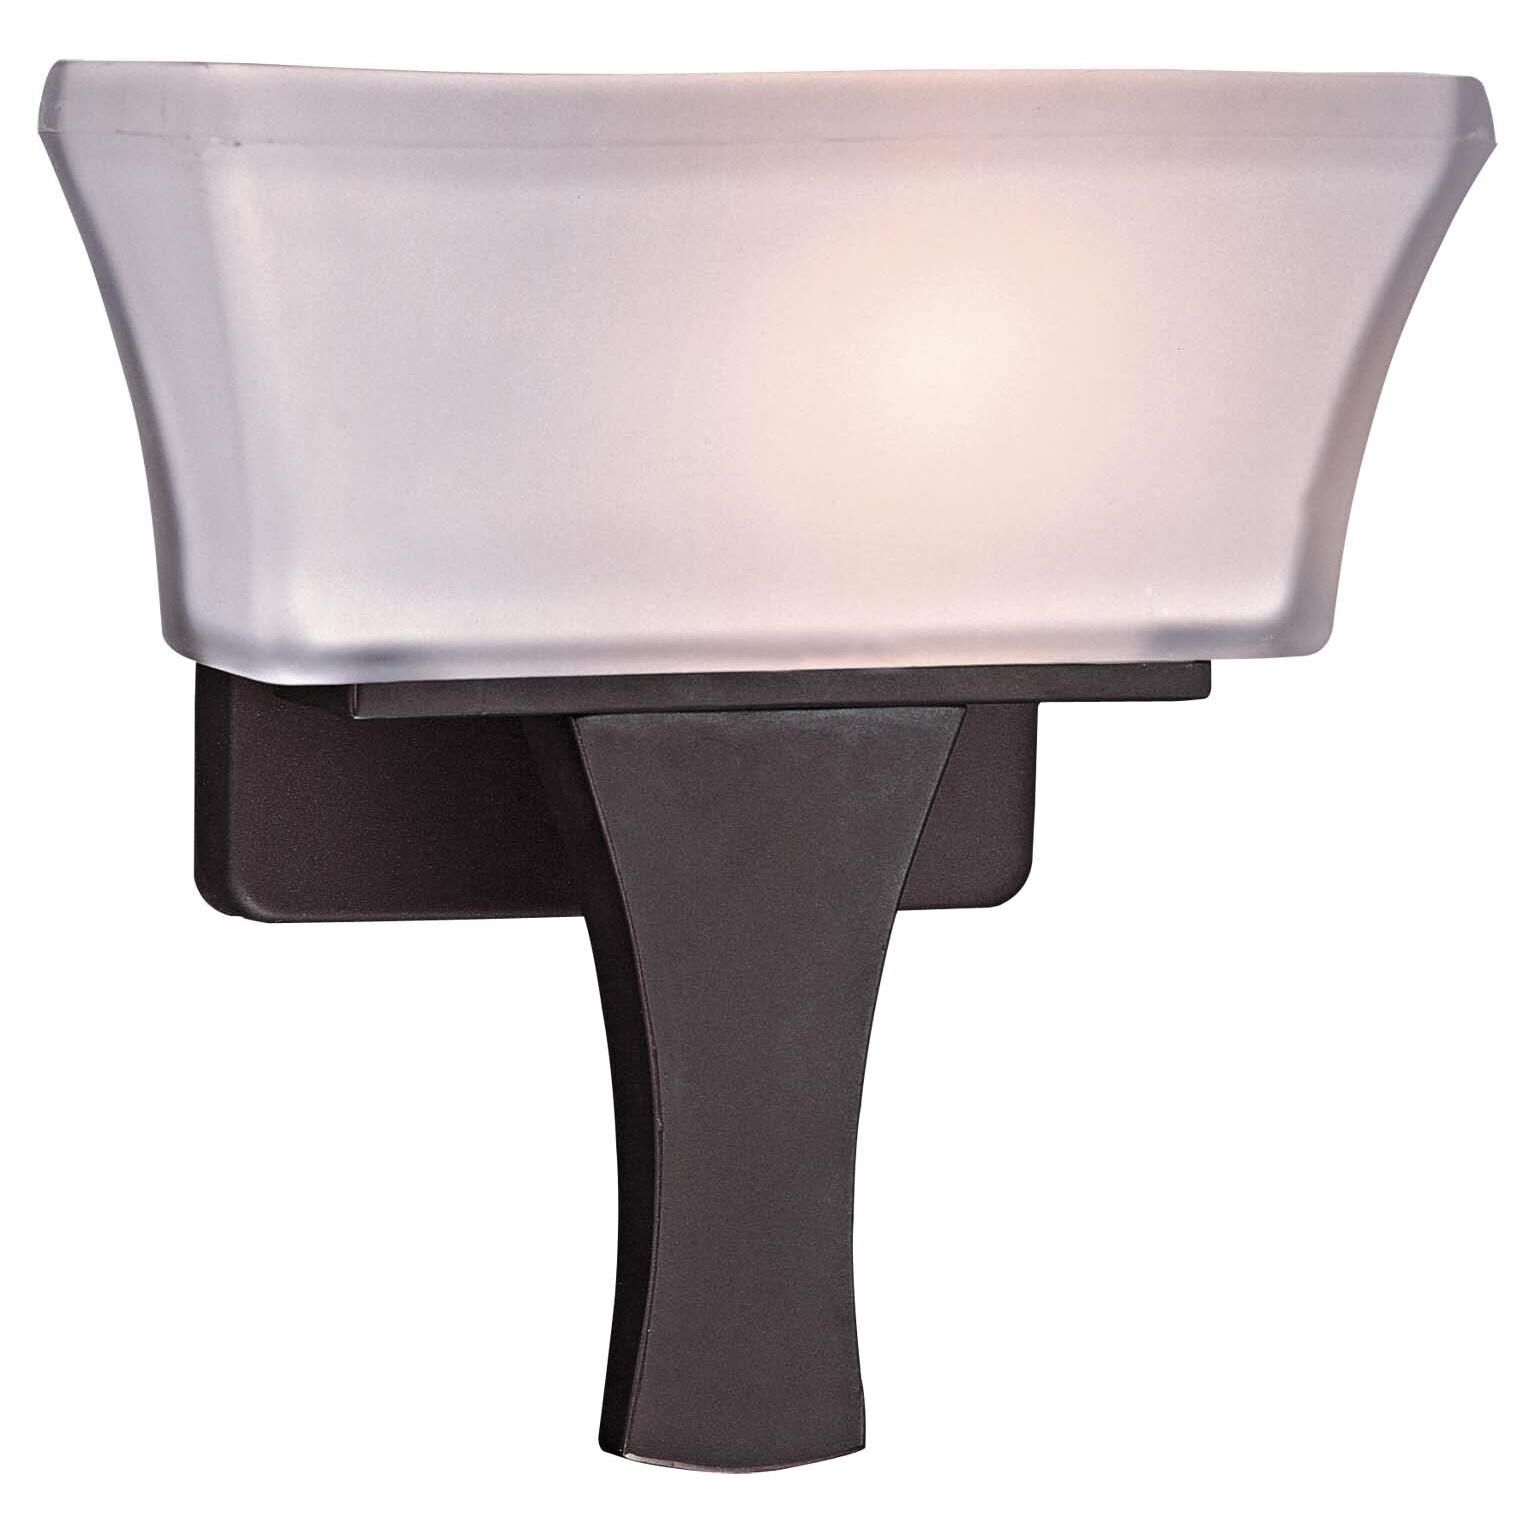 Kovacs 9 Inch Wall Sconce - P456-617 - Modern Contemporary